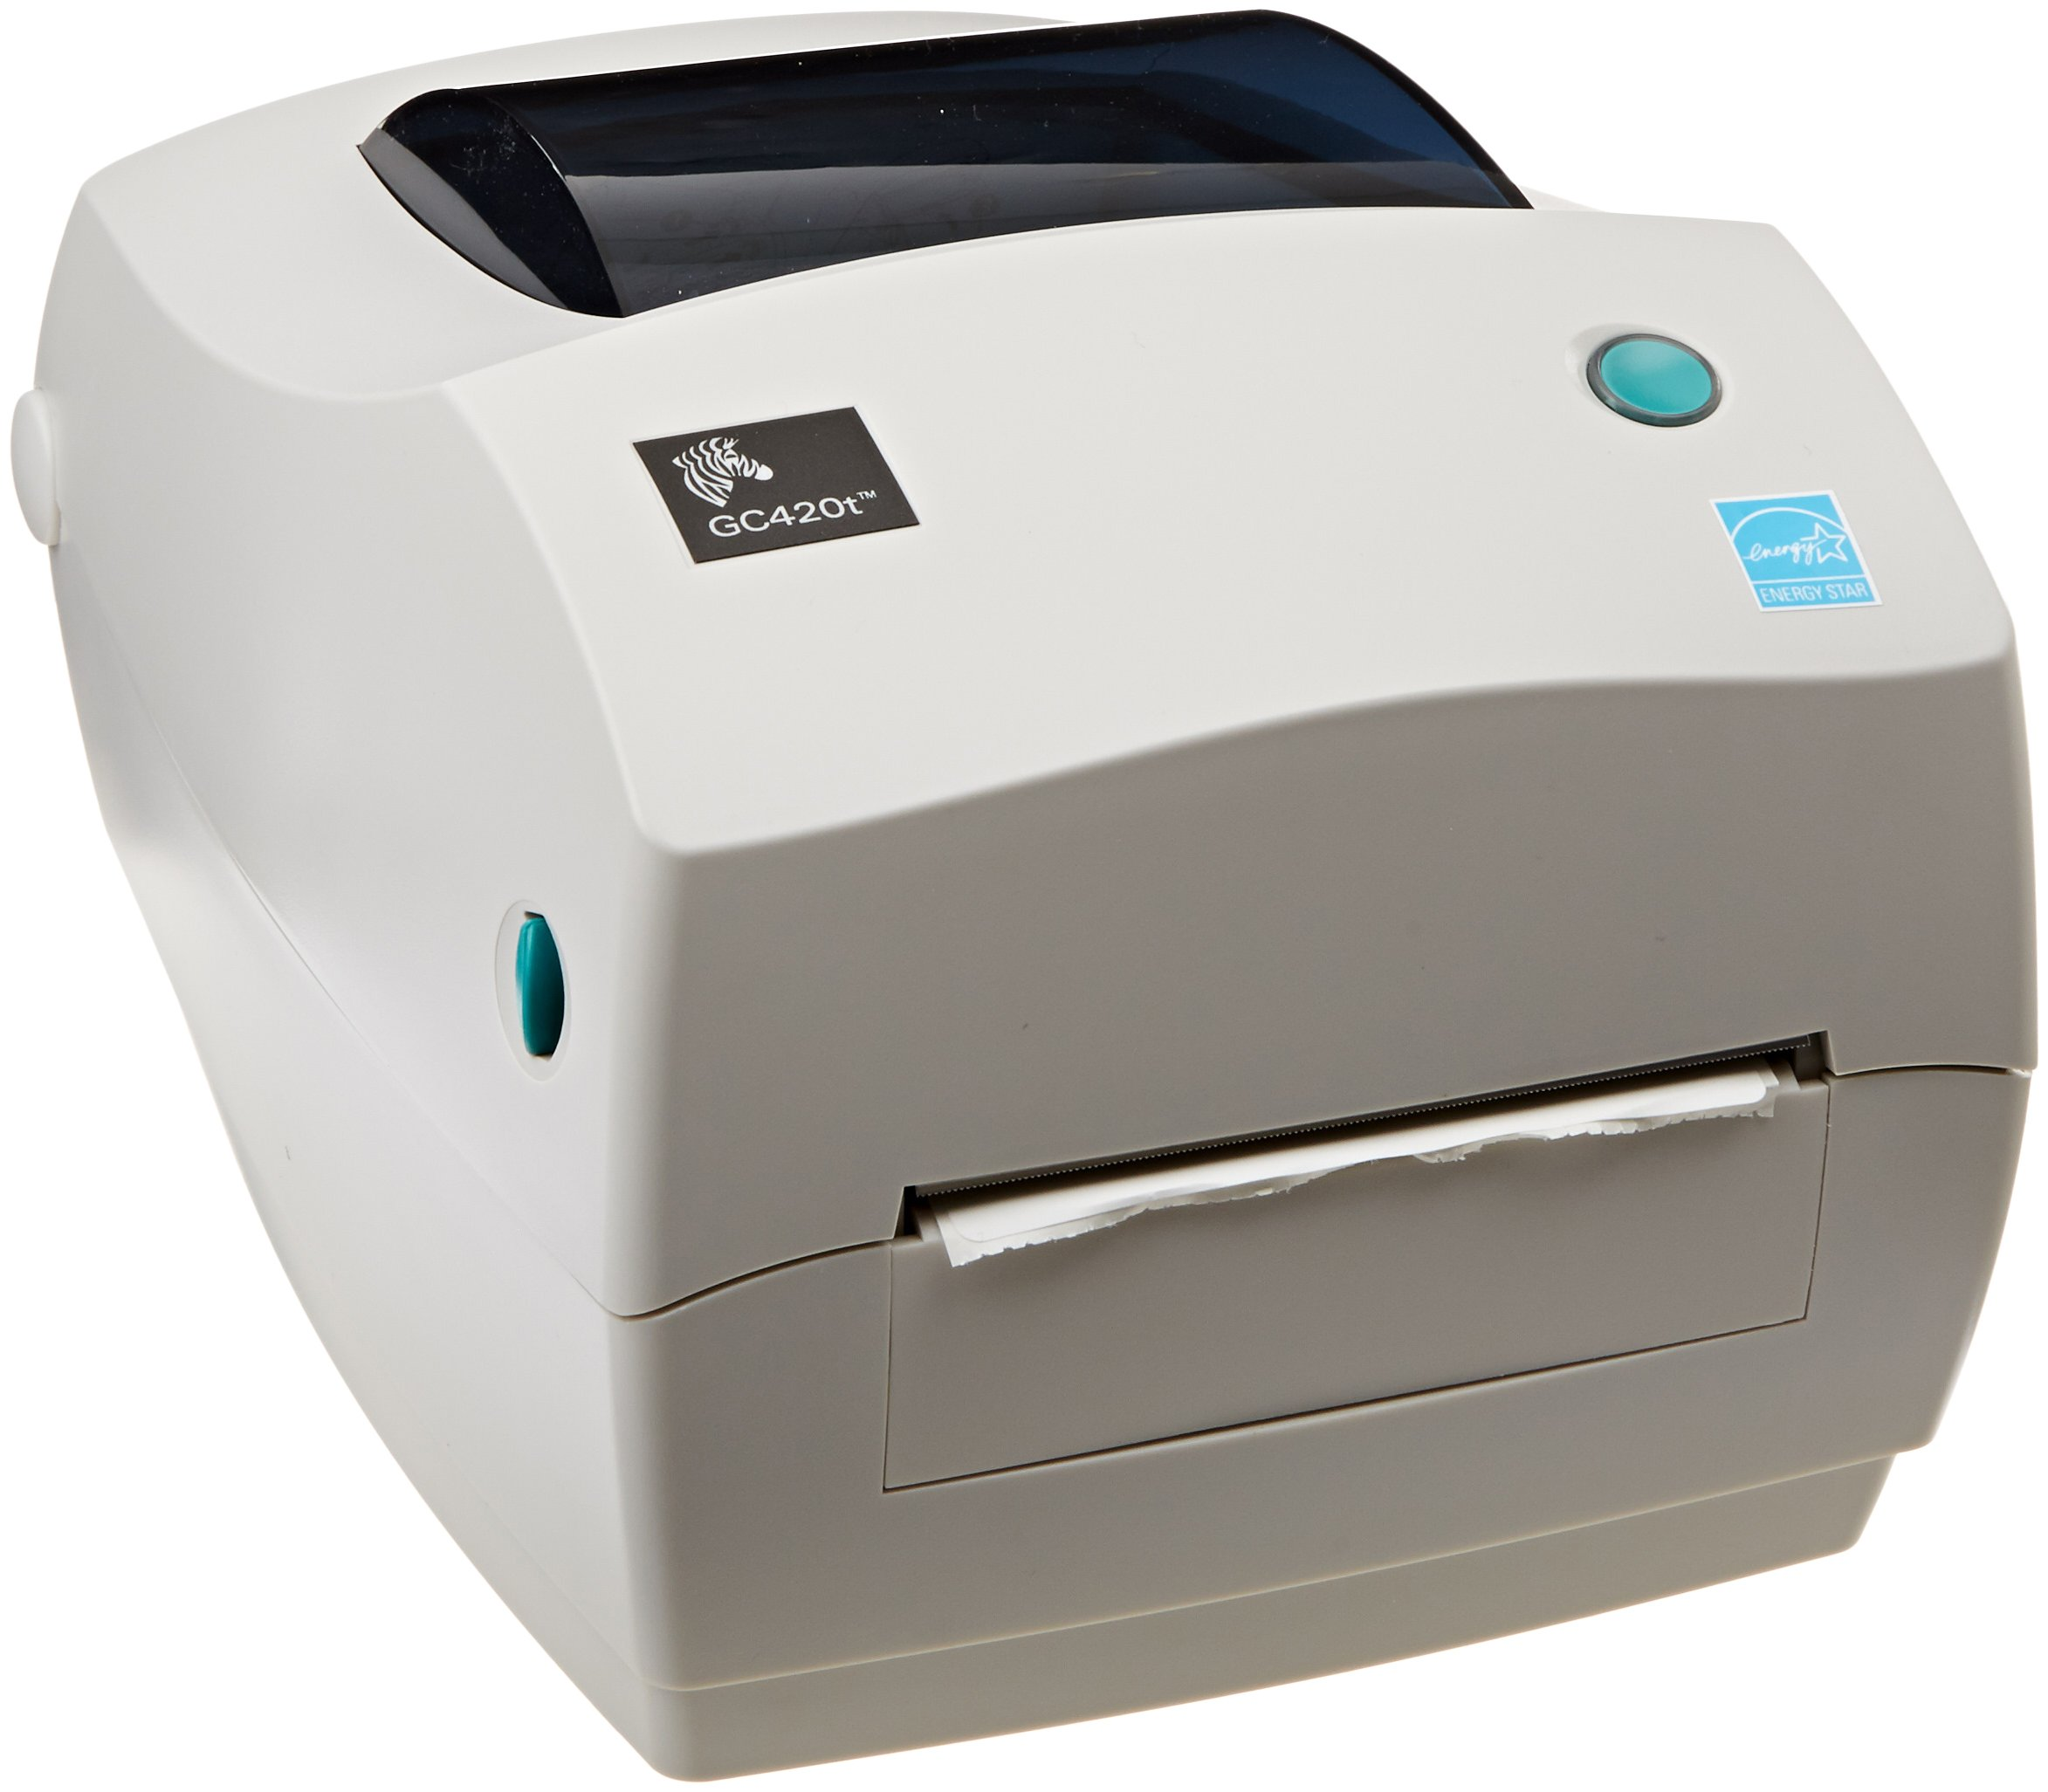 Zebra GC420t Monochrome Desktop Direct Thermal/Thermal Transfer Label Printer, 4''/s Print Speed, 203 dpi Print Resolution, 4.09'' Print Width, 110-240V AC by Zebra (Image #1)